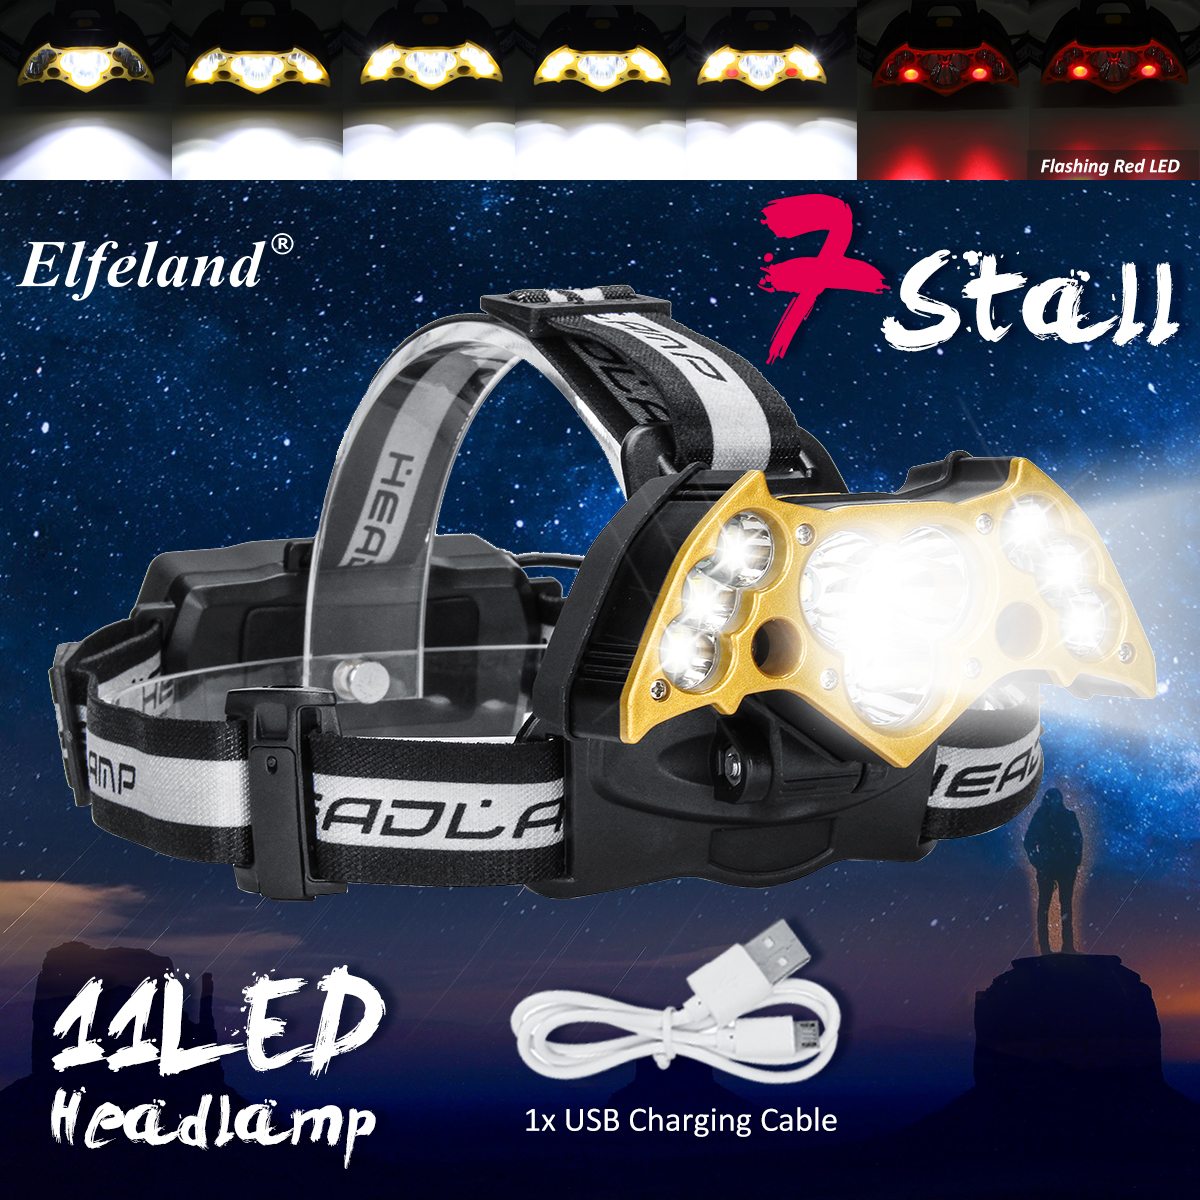 50000LM LED Headlamp 7/9/11 LED T6 Headlight Head Flashlight Torch Forehead Rechargeable COB Head Lamp Fishing Headlight 30w led cob usb rechargeable 18650 cob led headlamp headlight fishing torch flashlight